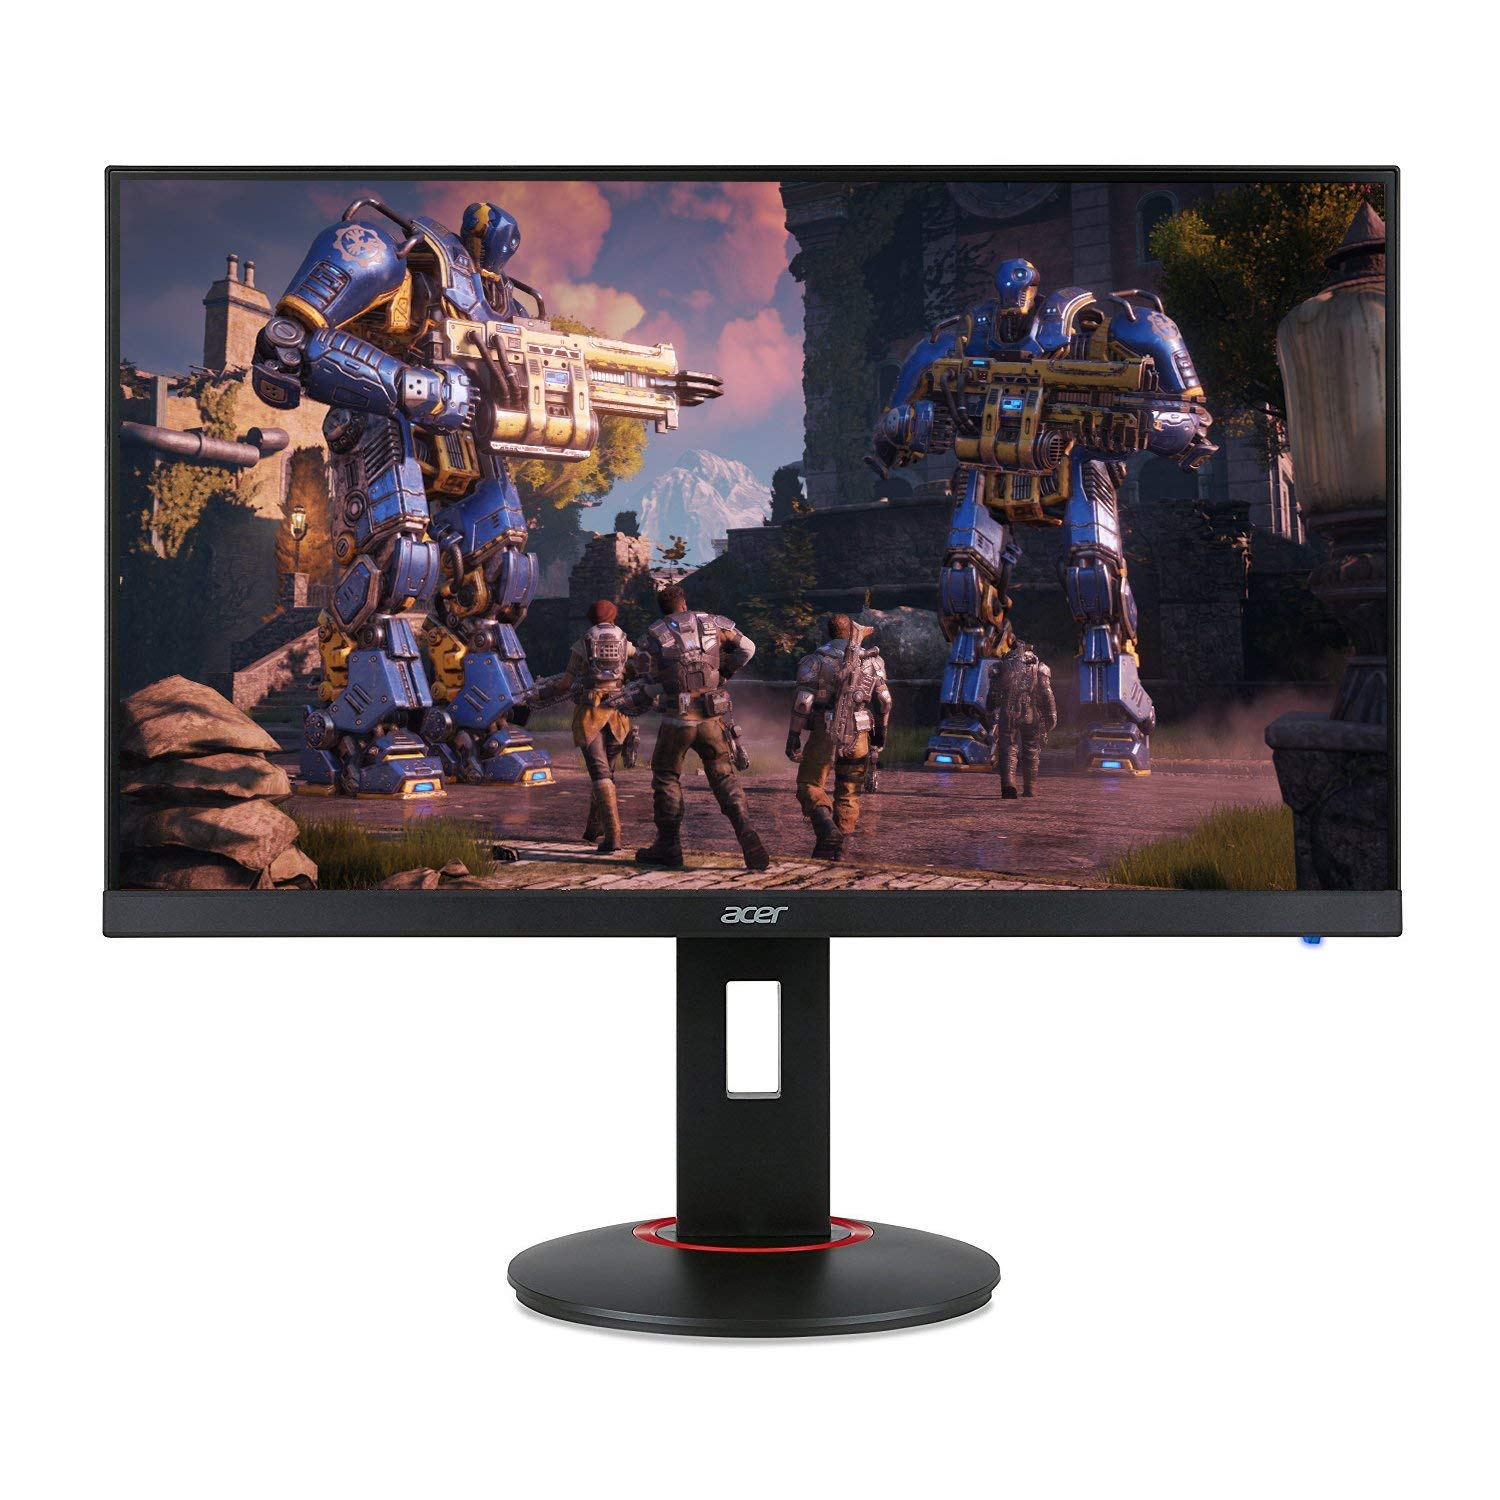 "Acer Gaming Monitor 27"" XF270H Abmidprzx"